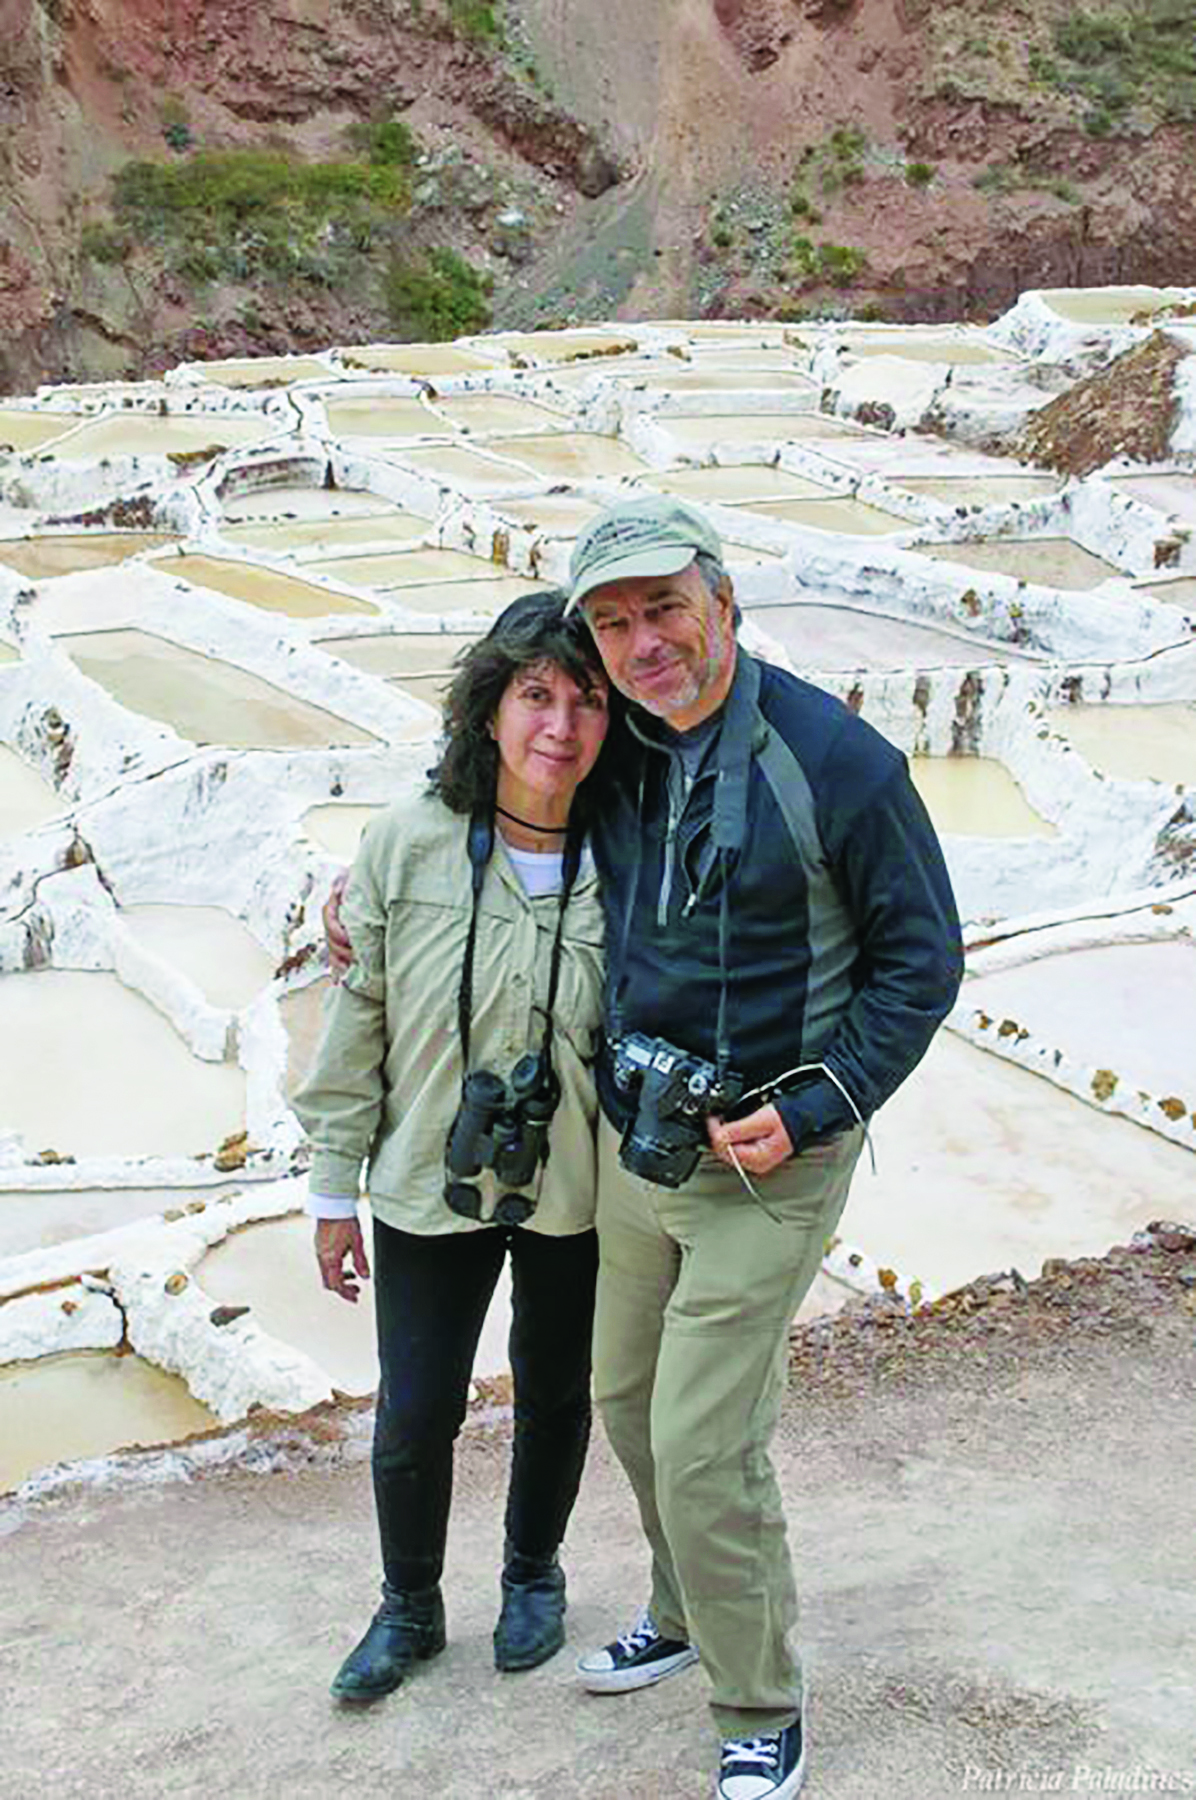 Patricia Paladines and Carl Safina at Salineras de Maras, Peru.